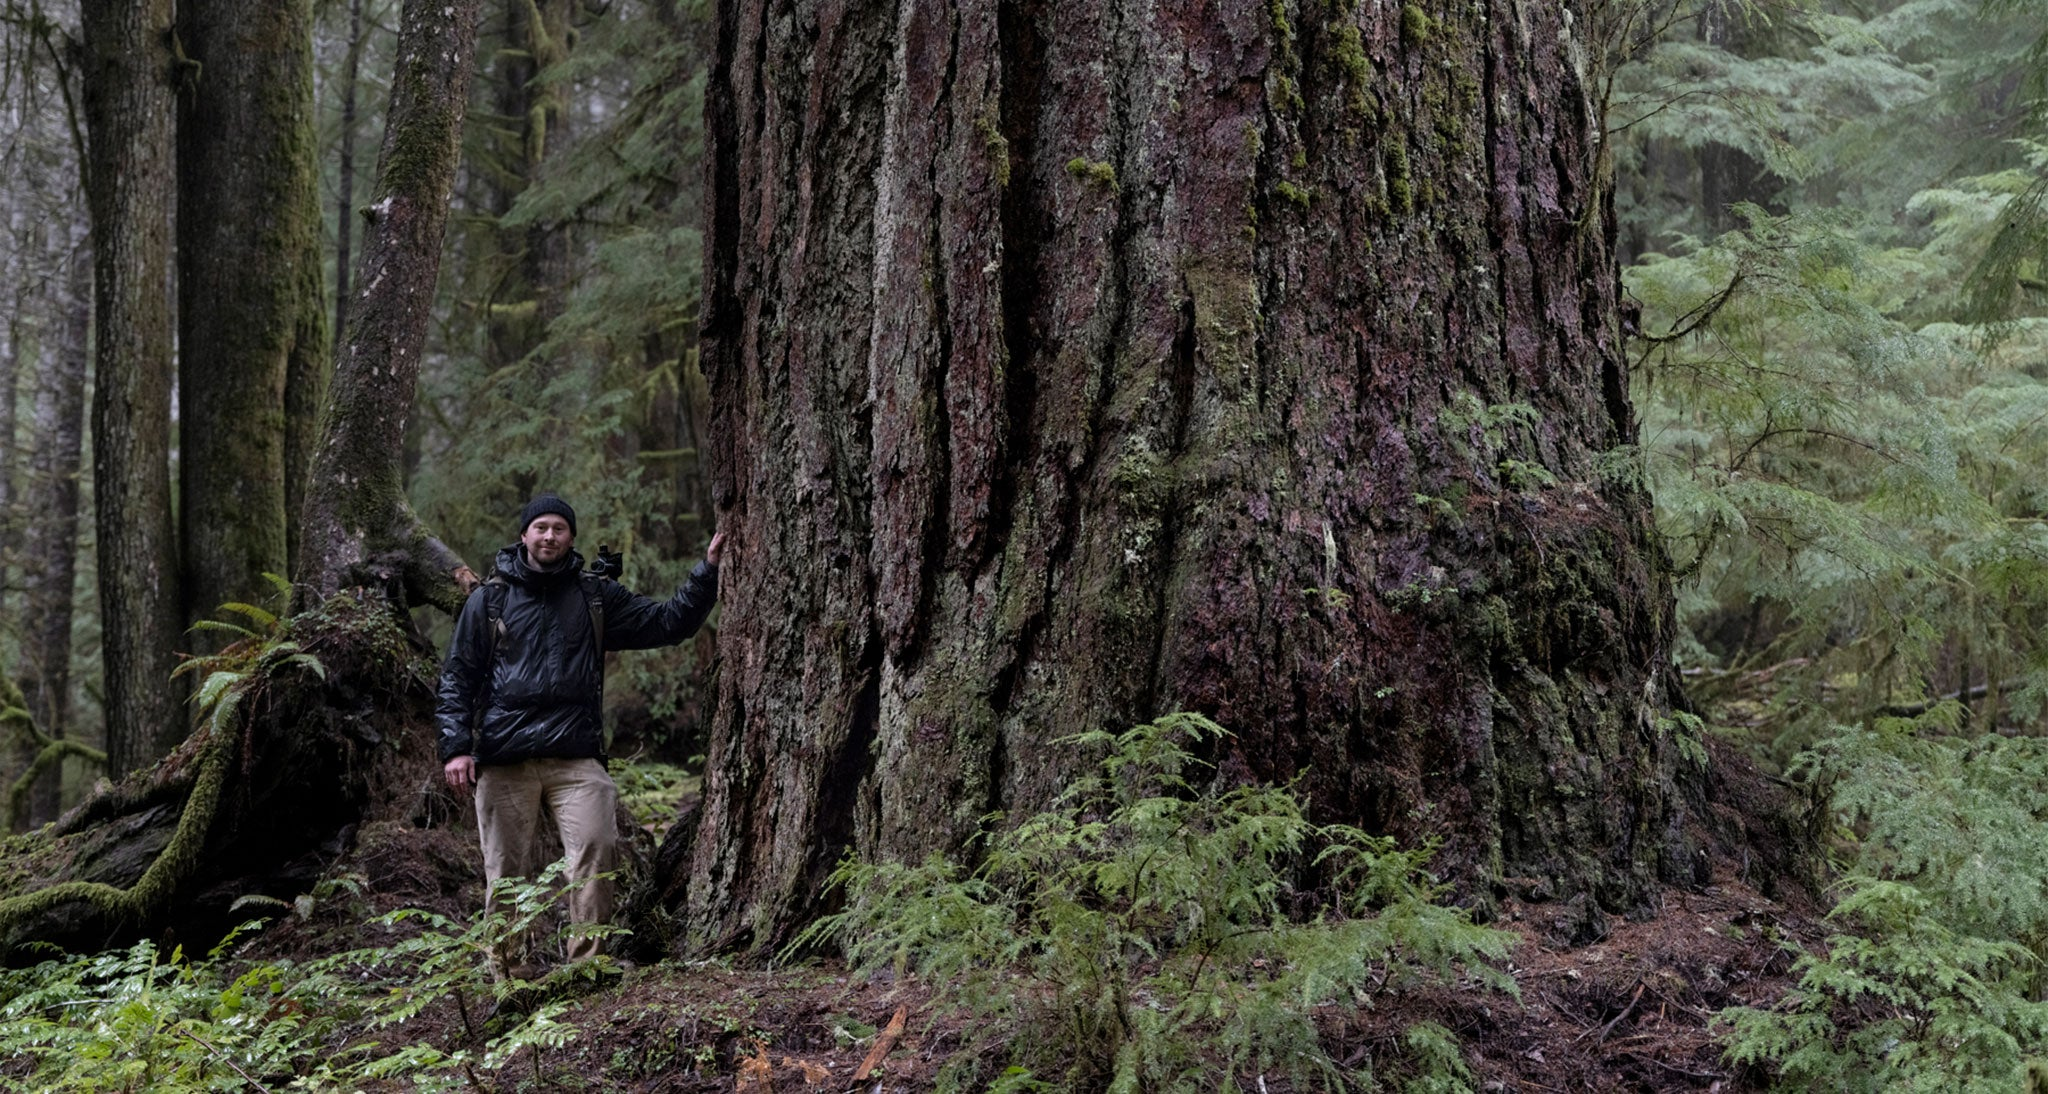 With a CBH of 33,' the Grandma Tree is the second thickest Douglas Fir in the U.S. and the fourth in the world.